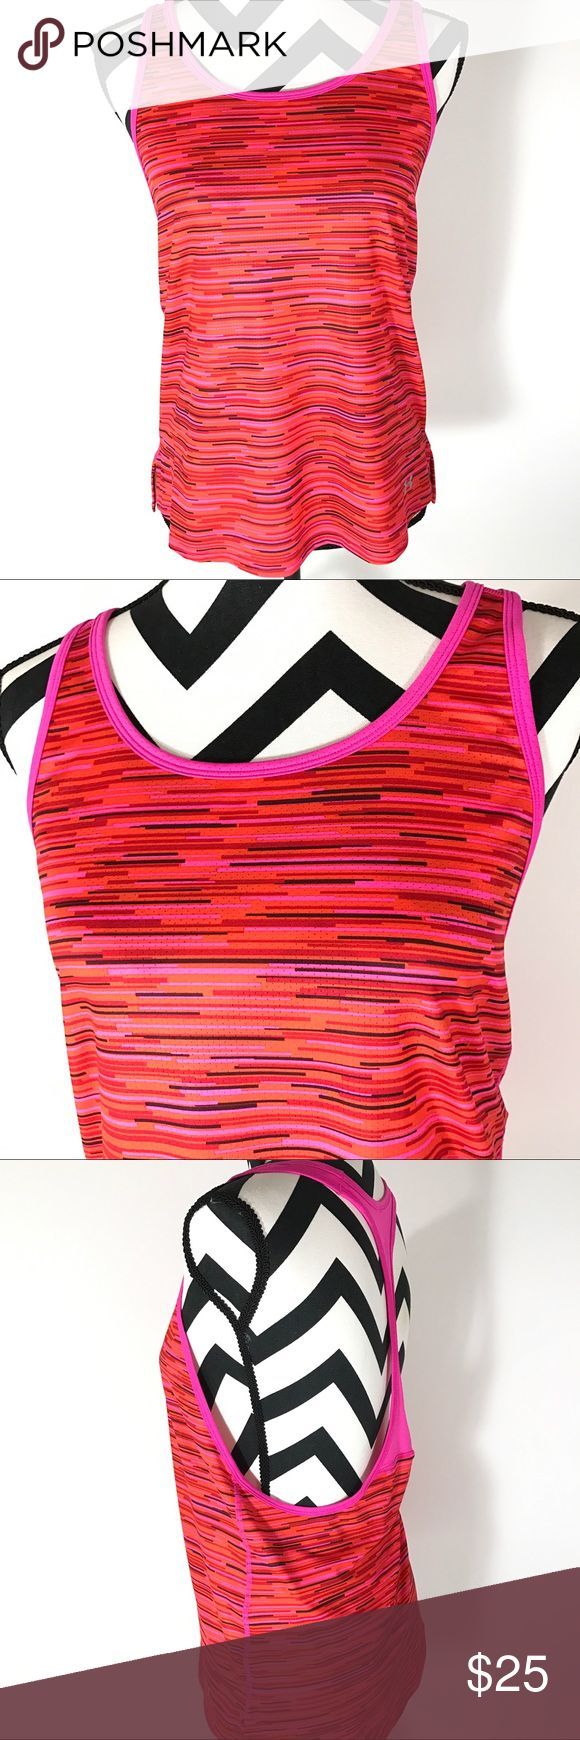 NWT UNDER ARMOUR HEAT GEAR LOOSE TANK TOP Small New with tags under armour womens small loose tank top.   Measurements  Chest measures armpit armpit 16.5 inches  Length measured from top of shoulder to bottom 25 inches Under Armour Tops Tank Tops